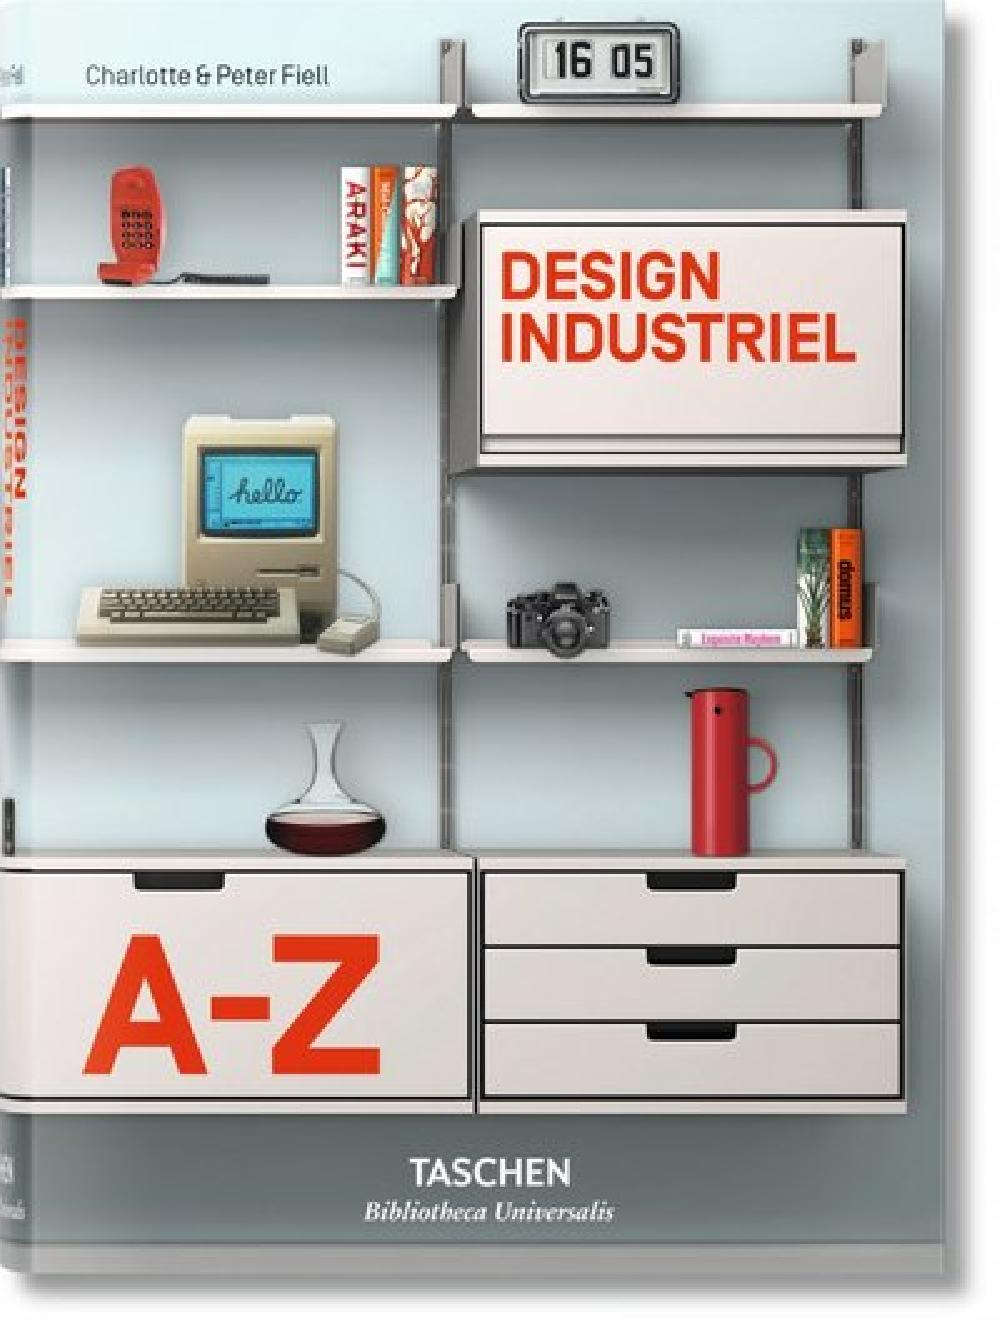 Design industriel A-Z